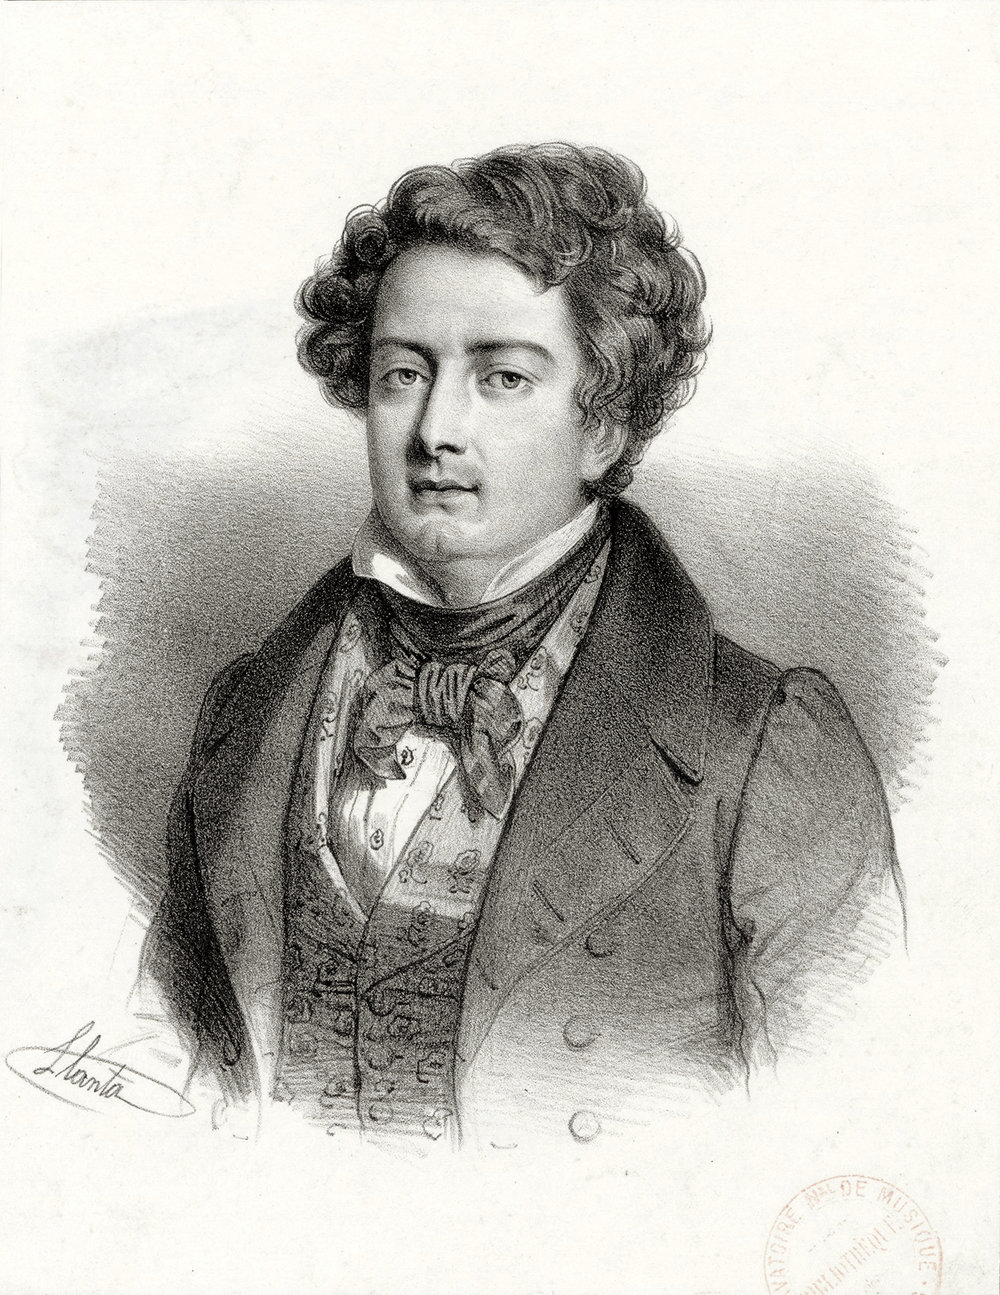 print by Jacques François Llanta, from the Bibliothèque nationale de France, département Musique